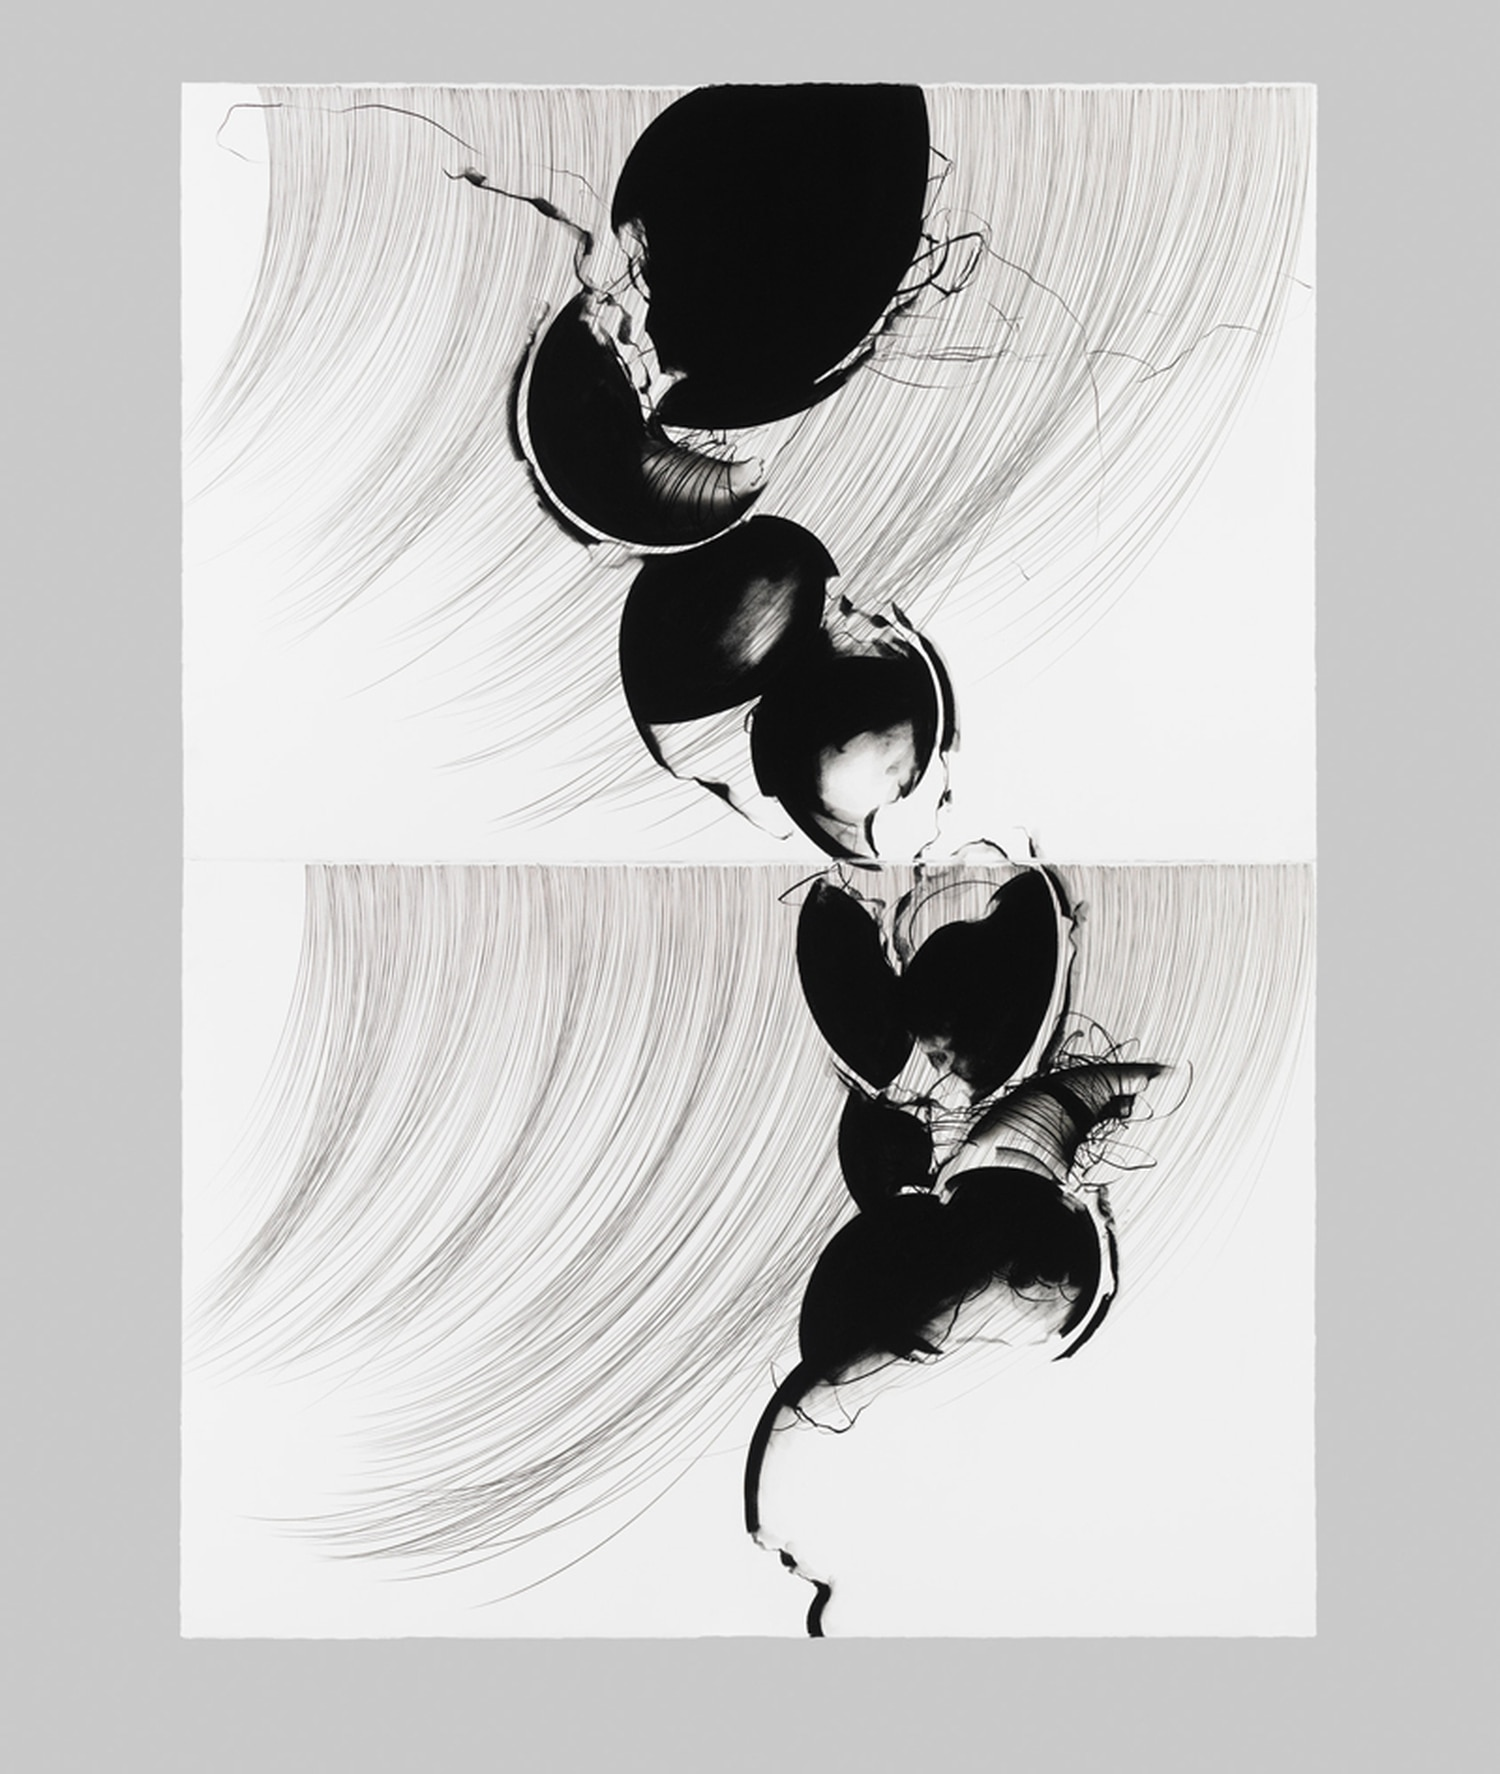 Texas artist Linda Lynch's black pigment drawings come to Santa Fe for the opening of new gallery space FOMA.